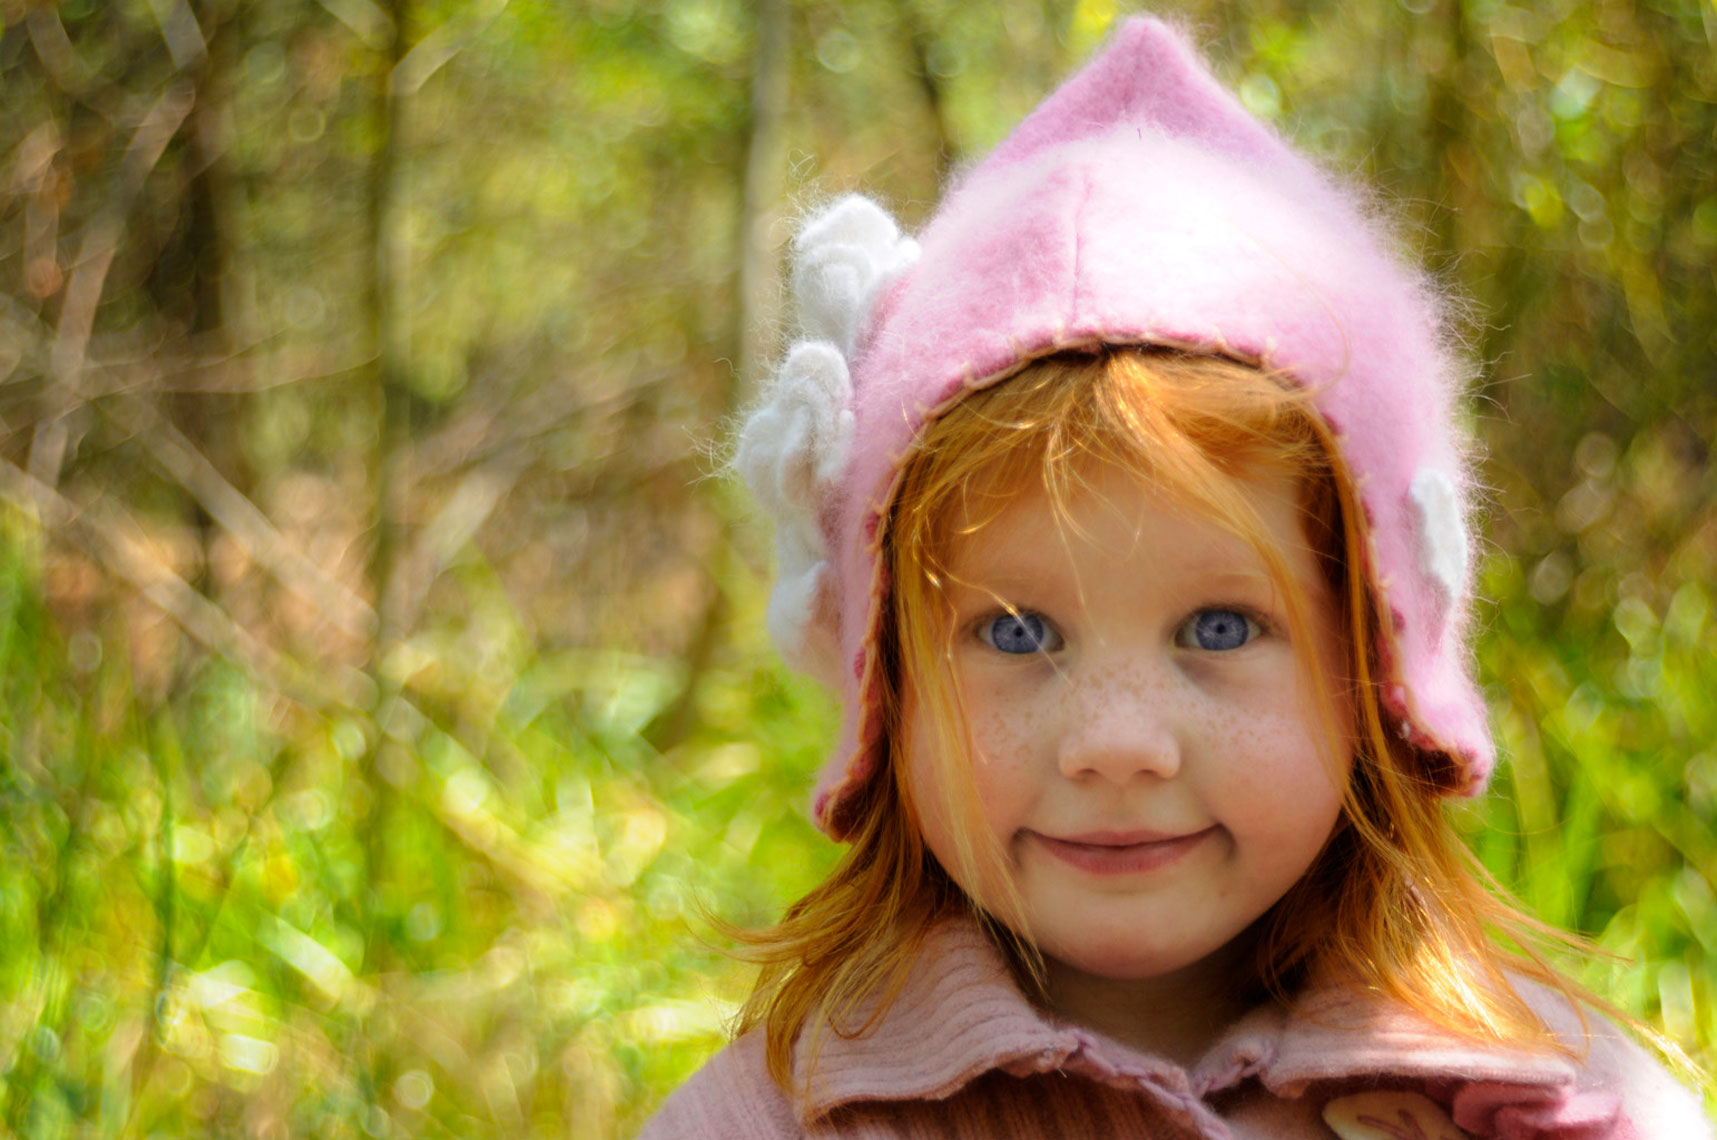 Portrait-of-young-girl-with-blue-eyes-and-red-hair-in-pink-hat